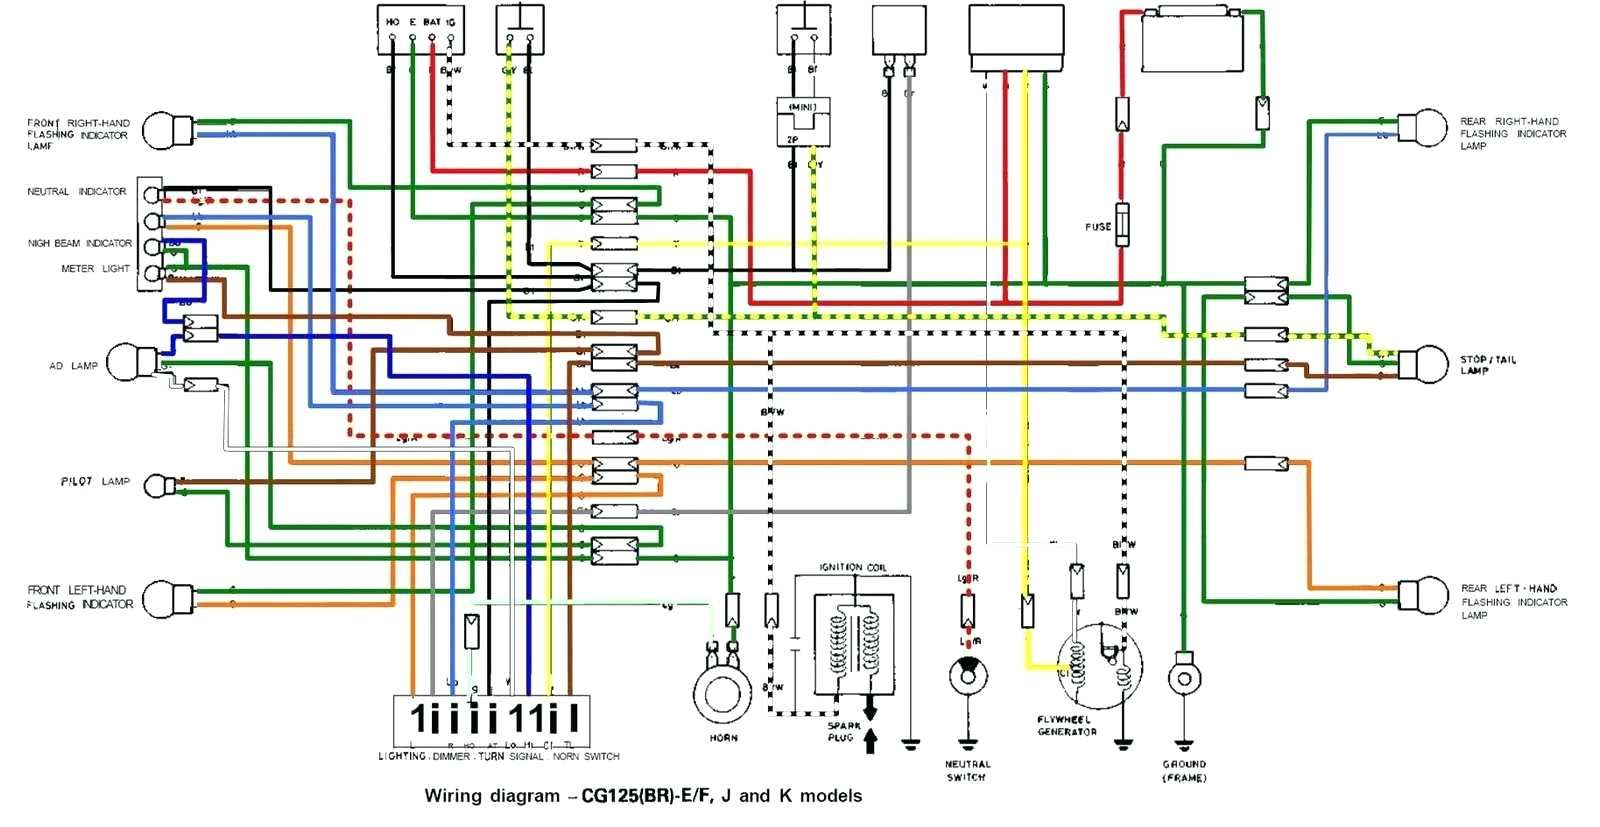 honda wave 110 wiring diagram wiring diagram today [ 1600 x 827 Pixel ]